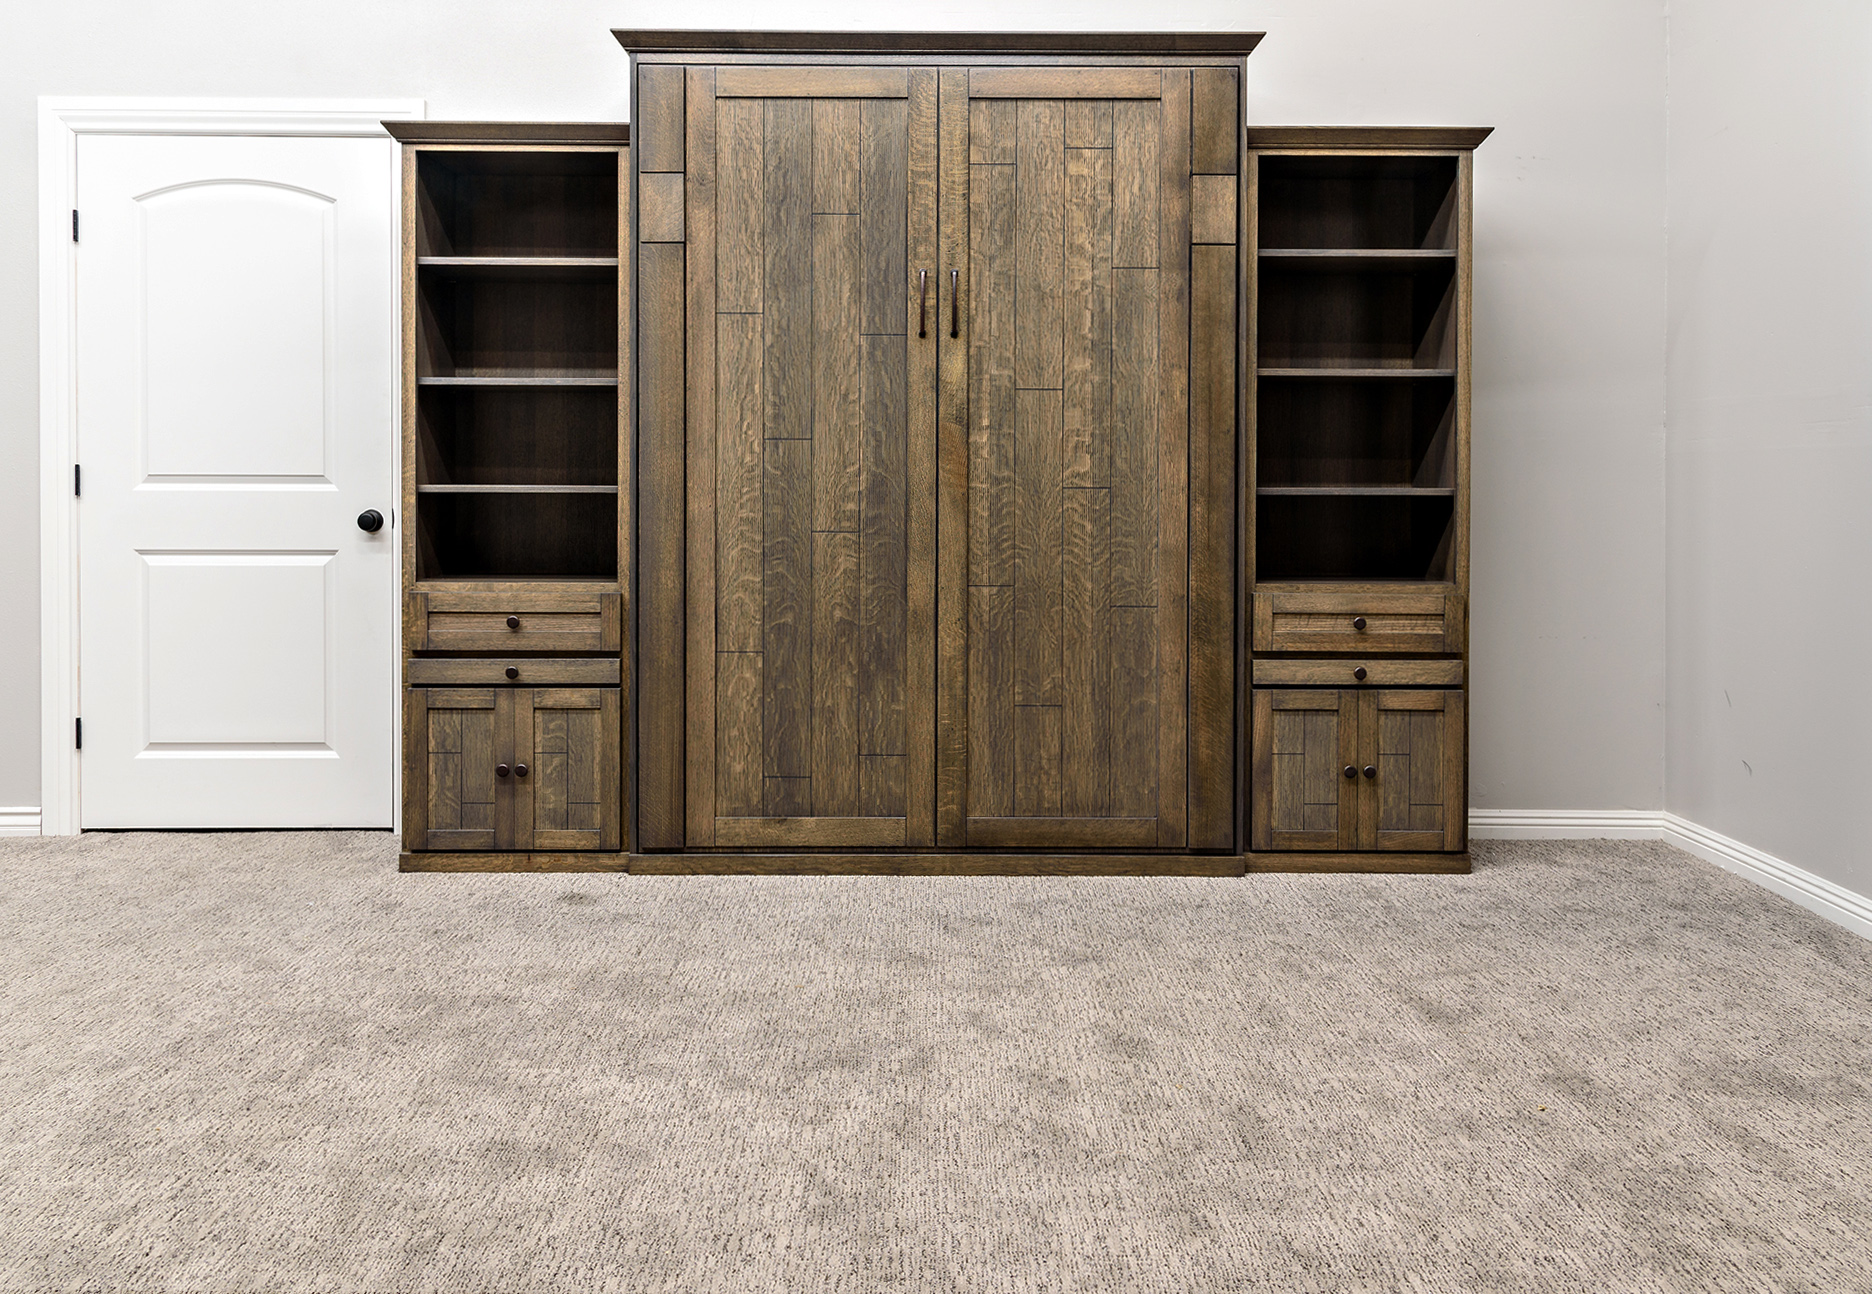 Cape Cod style Wallbed in Driftwood finish